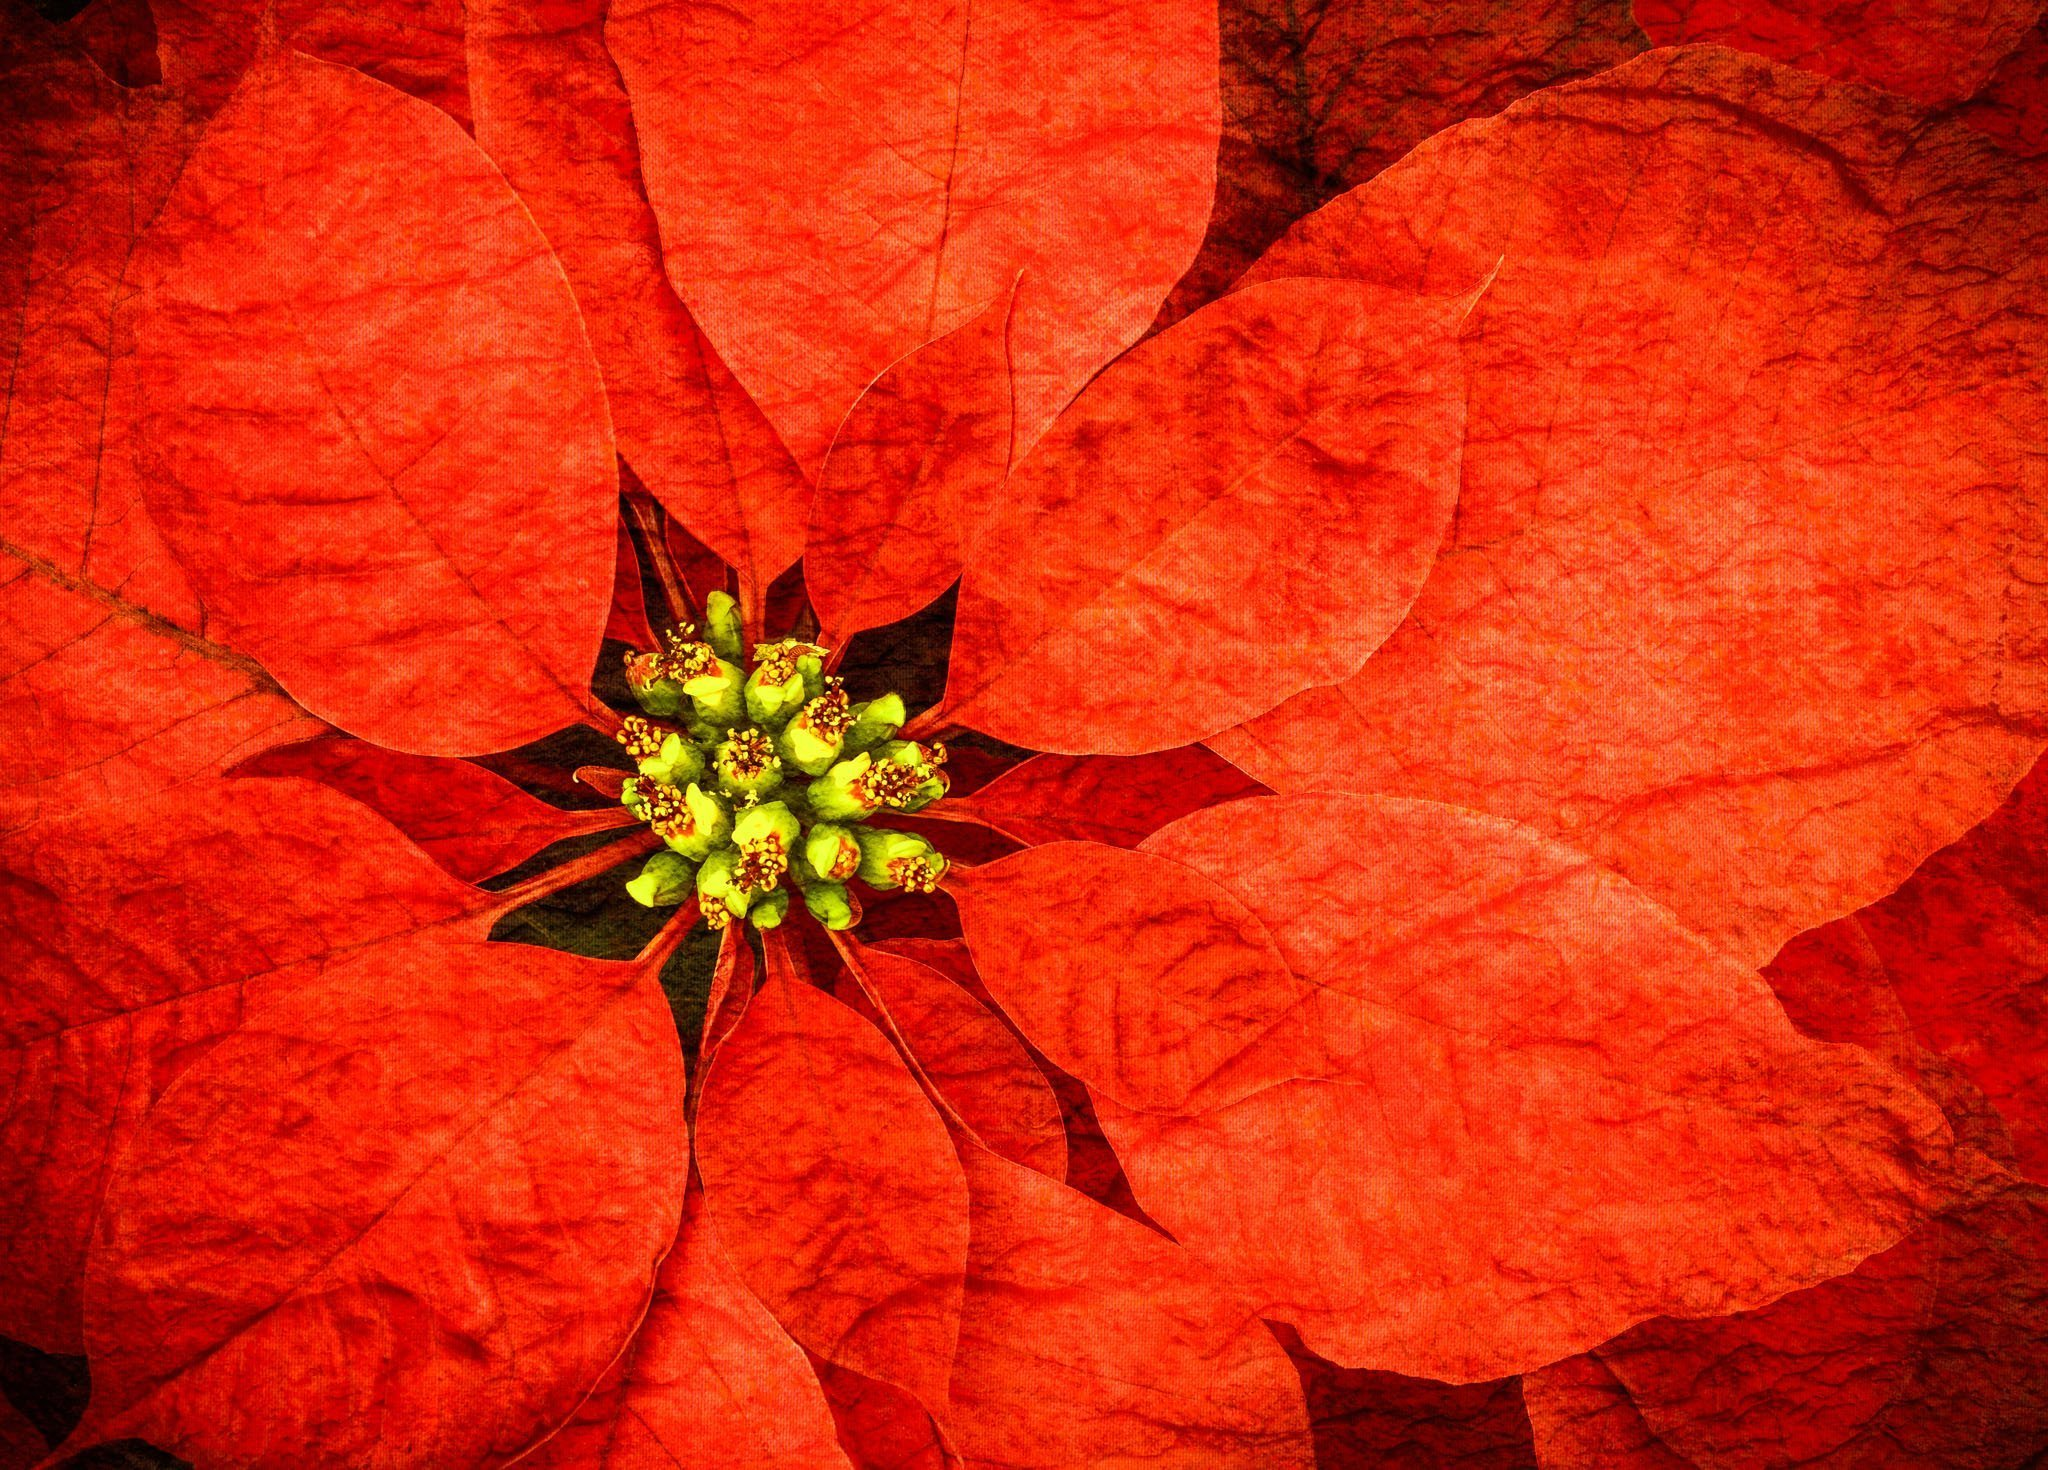 Poinsettia Flowers with Textures